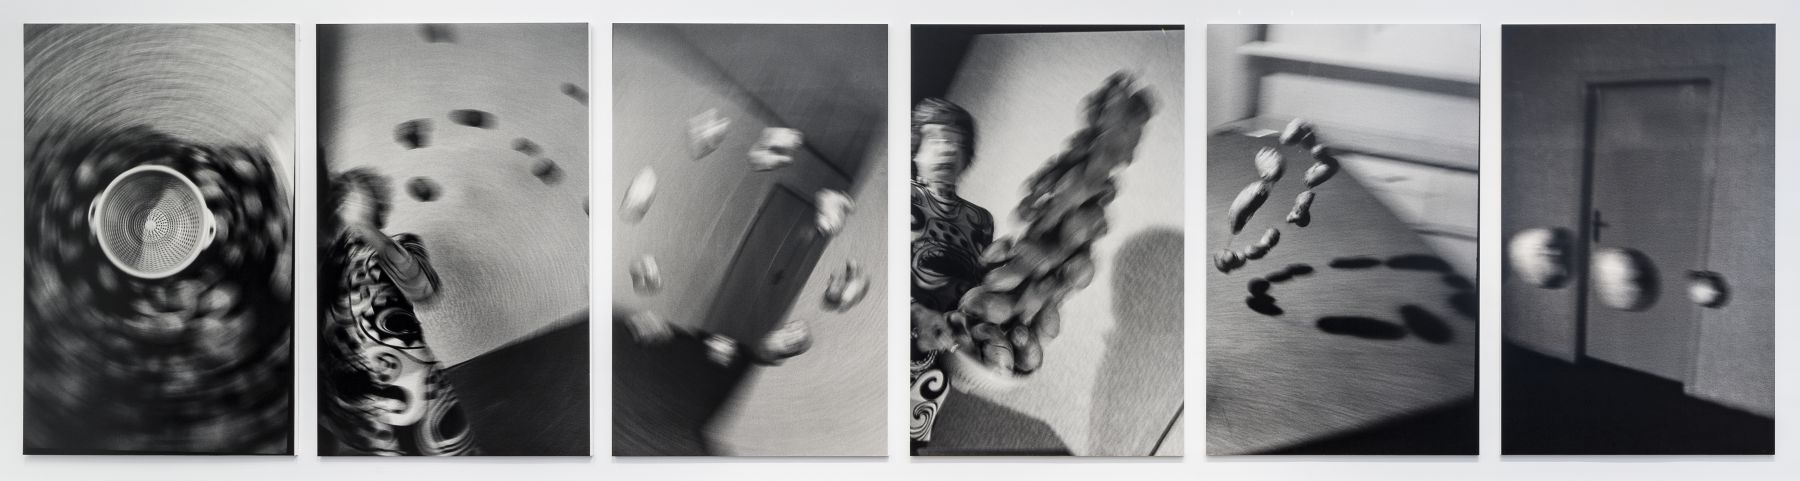 Küchenkoller 1985/2016 6 gelatin silver prints mounted on foam core